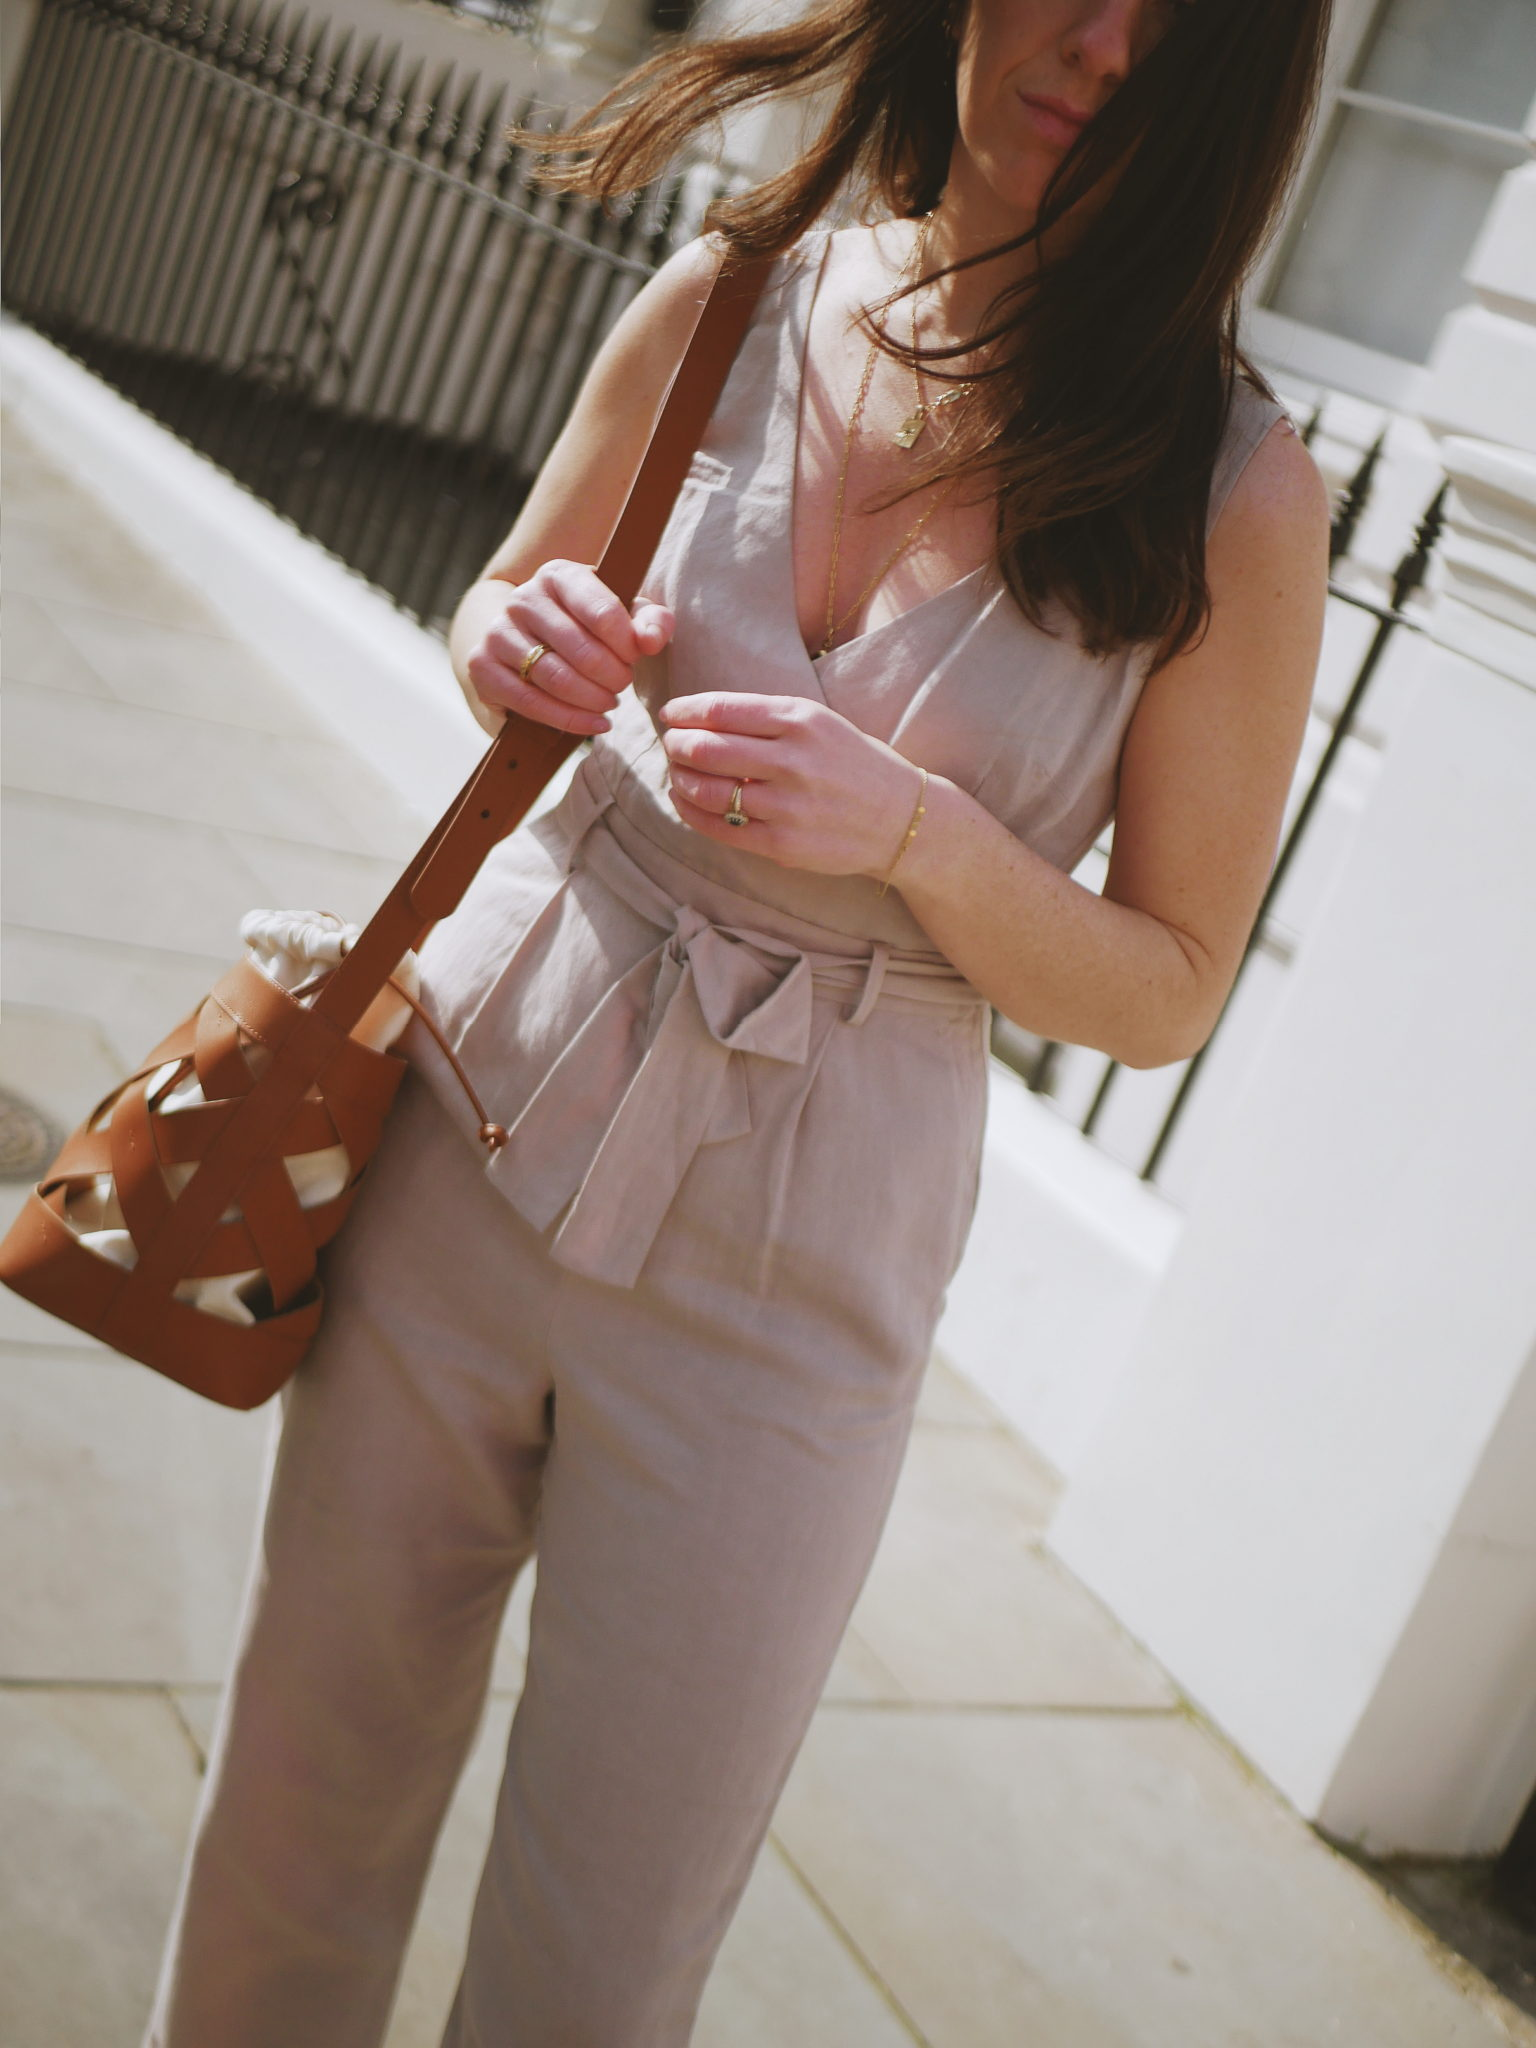 "<a href= ""https://bs.serving-sys.com/serving/adServer.bs?cn=trd&mc=click&pli=28052699&PluID=0&ord=[timestamp]""><u>Briella Linen Jumpsuit</u></a><br/> <a href=""https://bs.serving-sys.com/serving/adServer.bs?cn=trd&mc=click&pli=28052700&PluID=0&ord=[timestamp]""><u>Turner Bucket bag</u></a>"